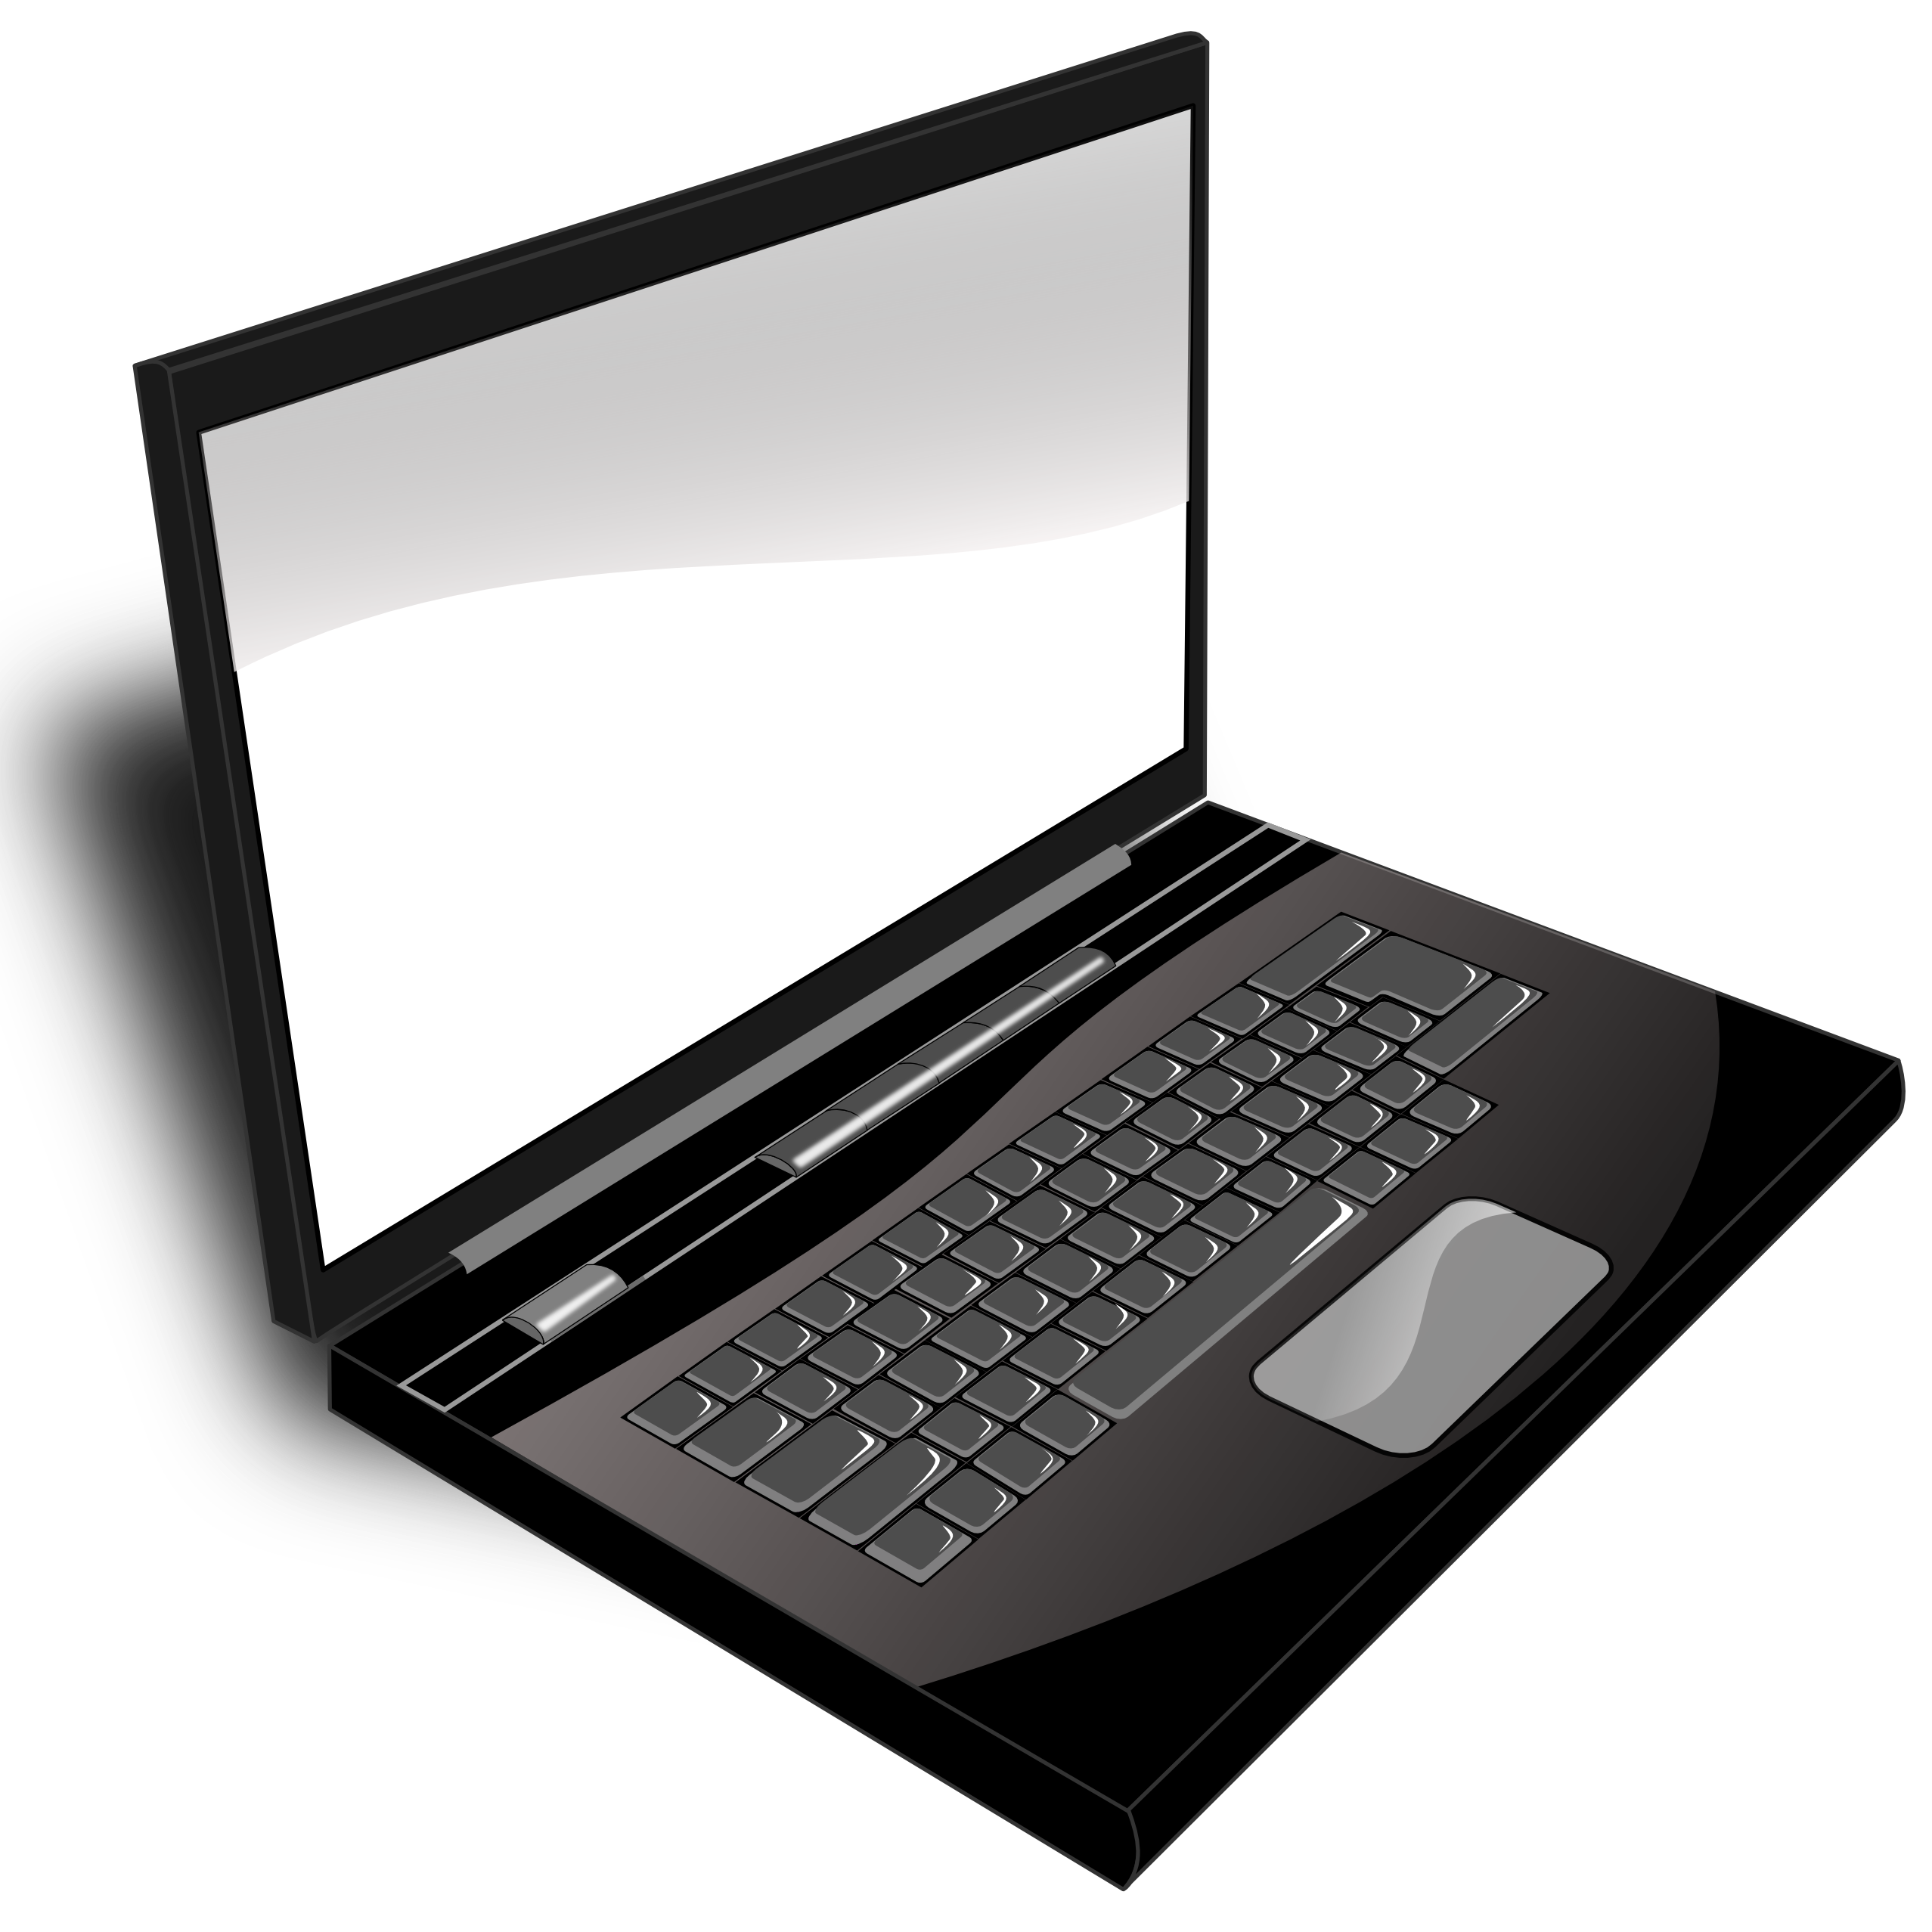 Apple laptop clipart black and white clip transparent library Apple Laptop Clipart | Free download best Apple Laptop Clipart on ... clip transparent library